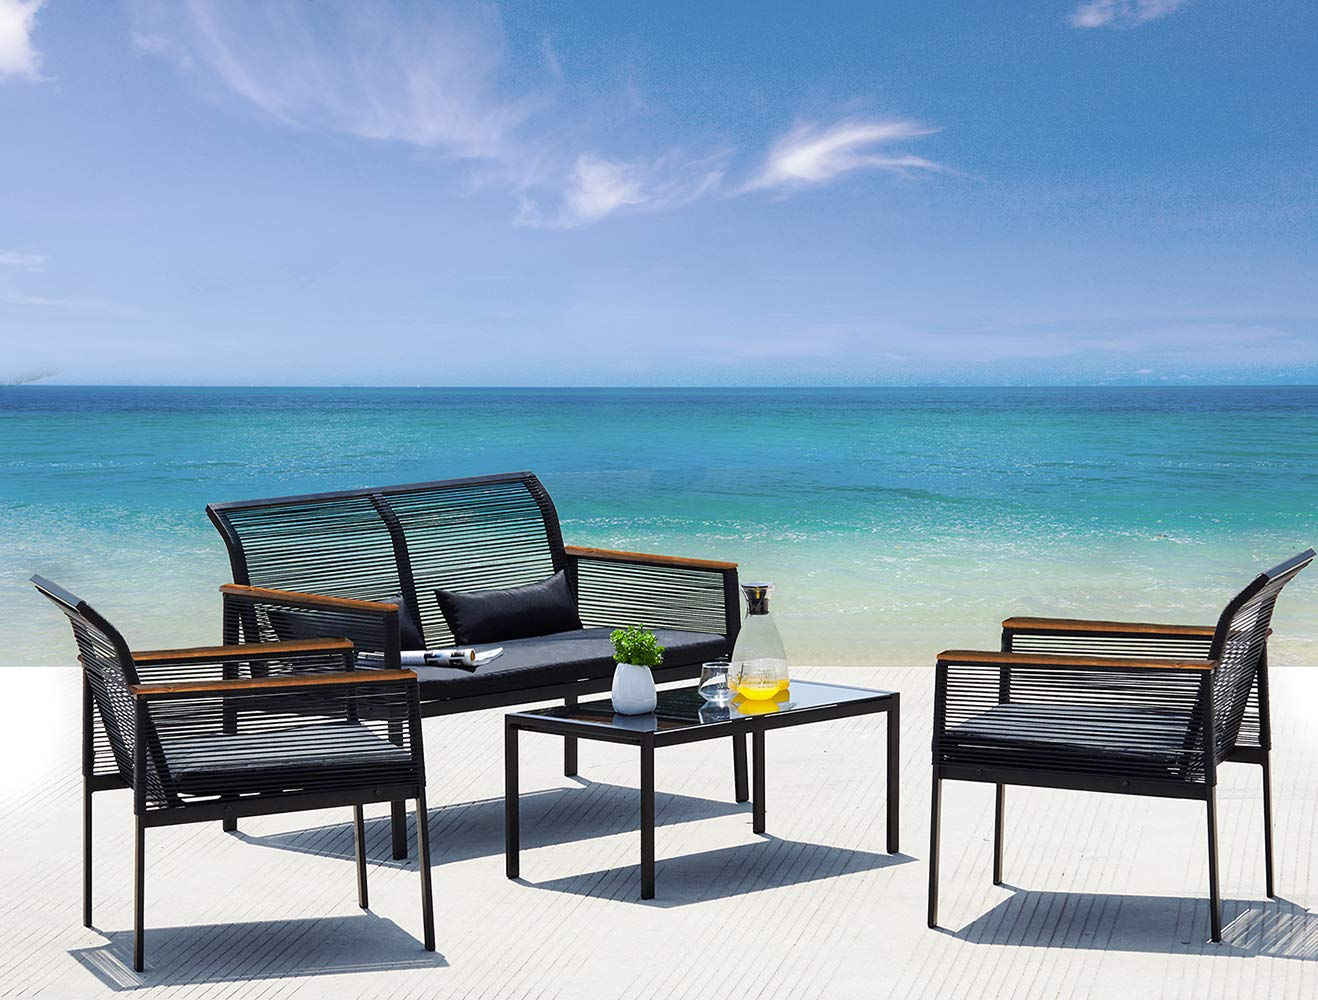 Suntone Patio Furniture Sofa Set